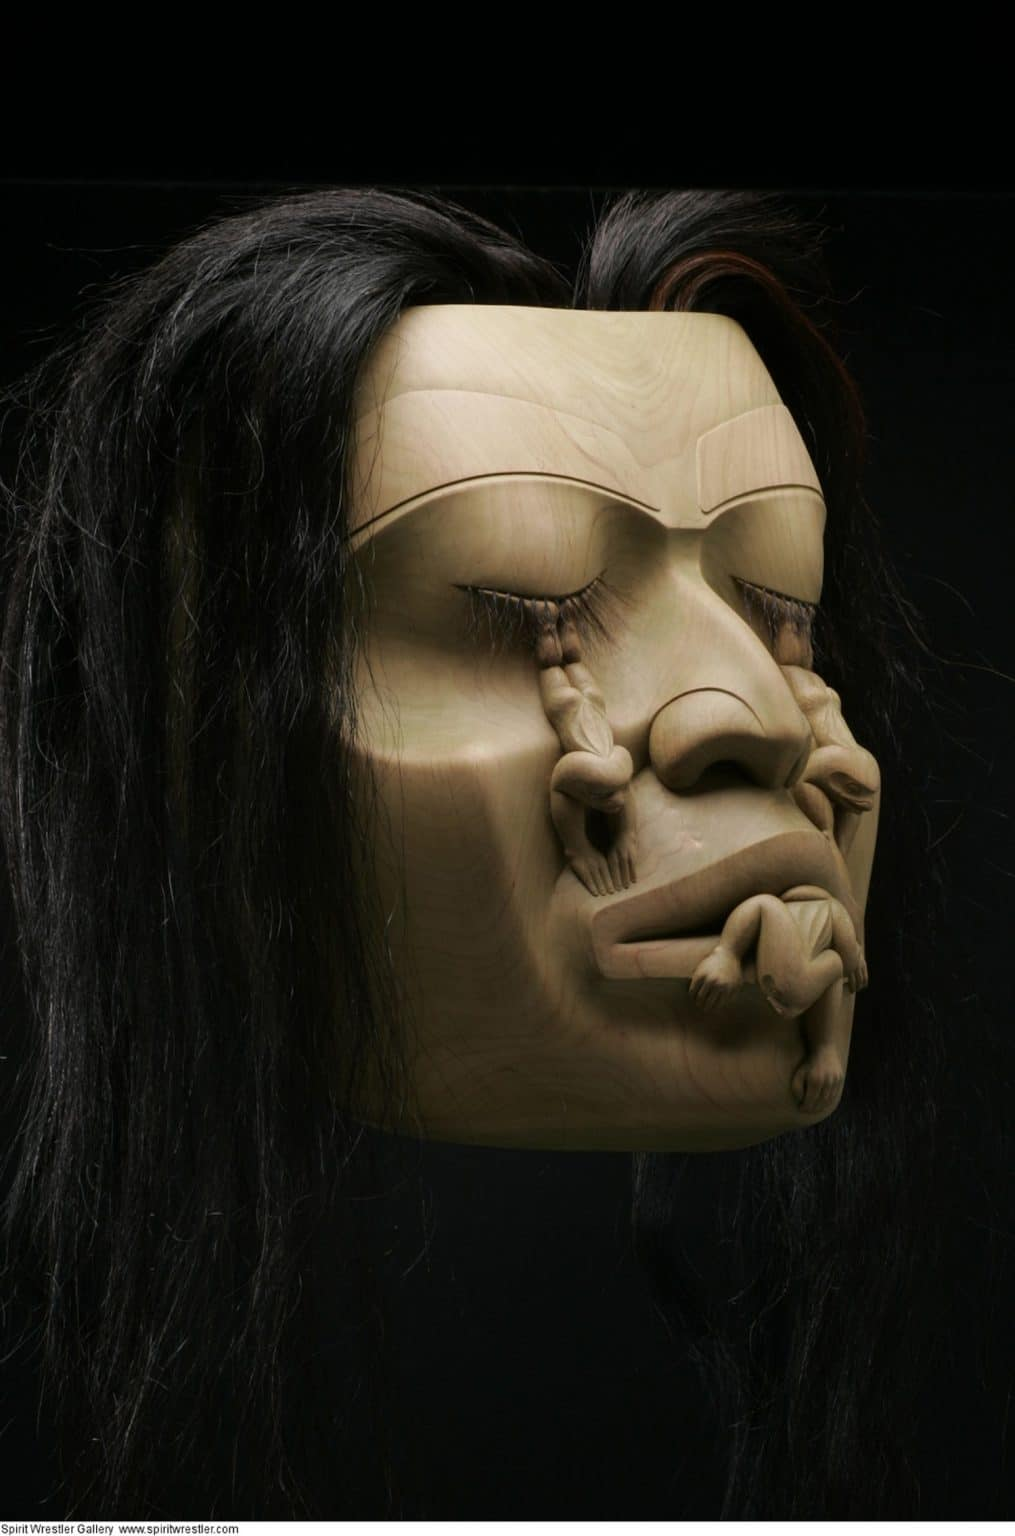 2012-FNA-norman-tait-Weeping Volcano Woman